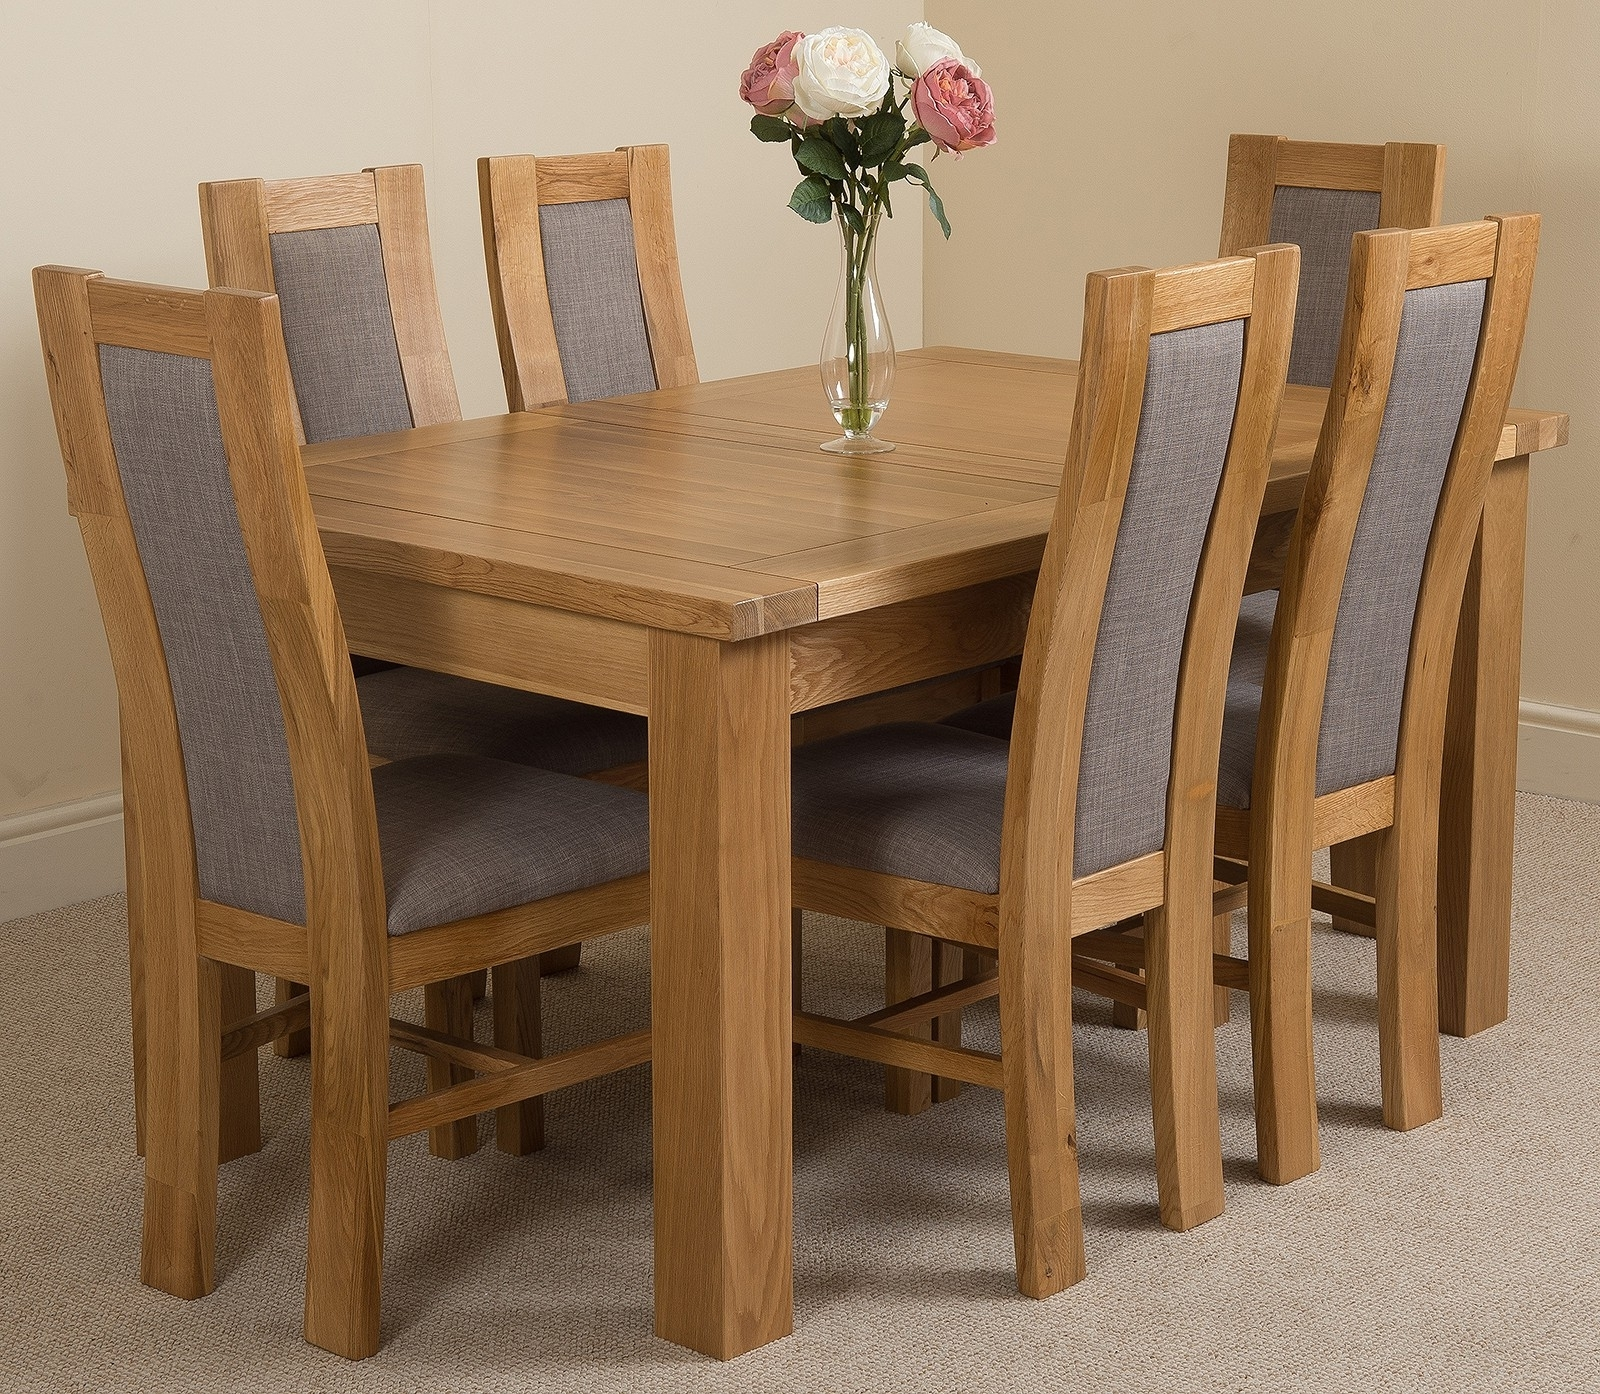 Trendy Extendable Oak Dining Tables And Chairs With Regard To Seattle Dining Set With 6 Stanford Chairs (View 5 of 25)